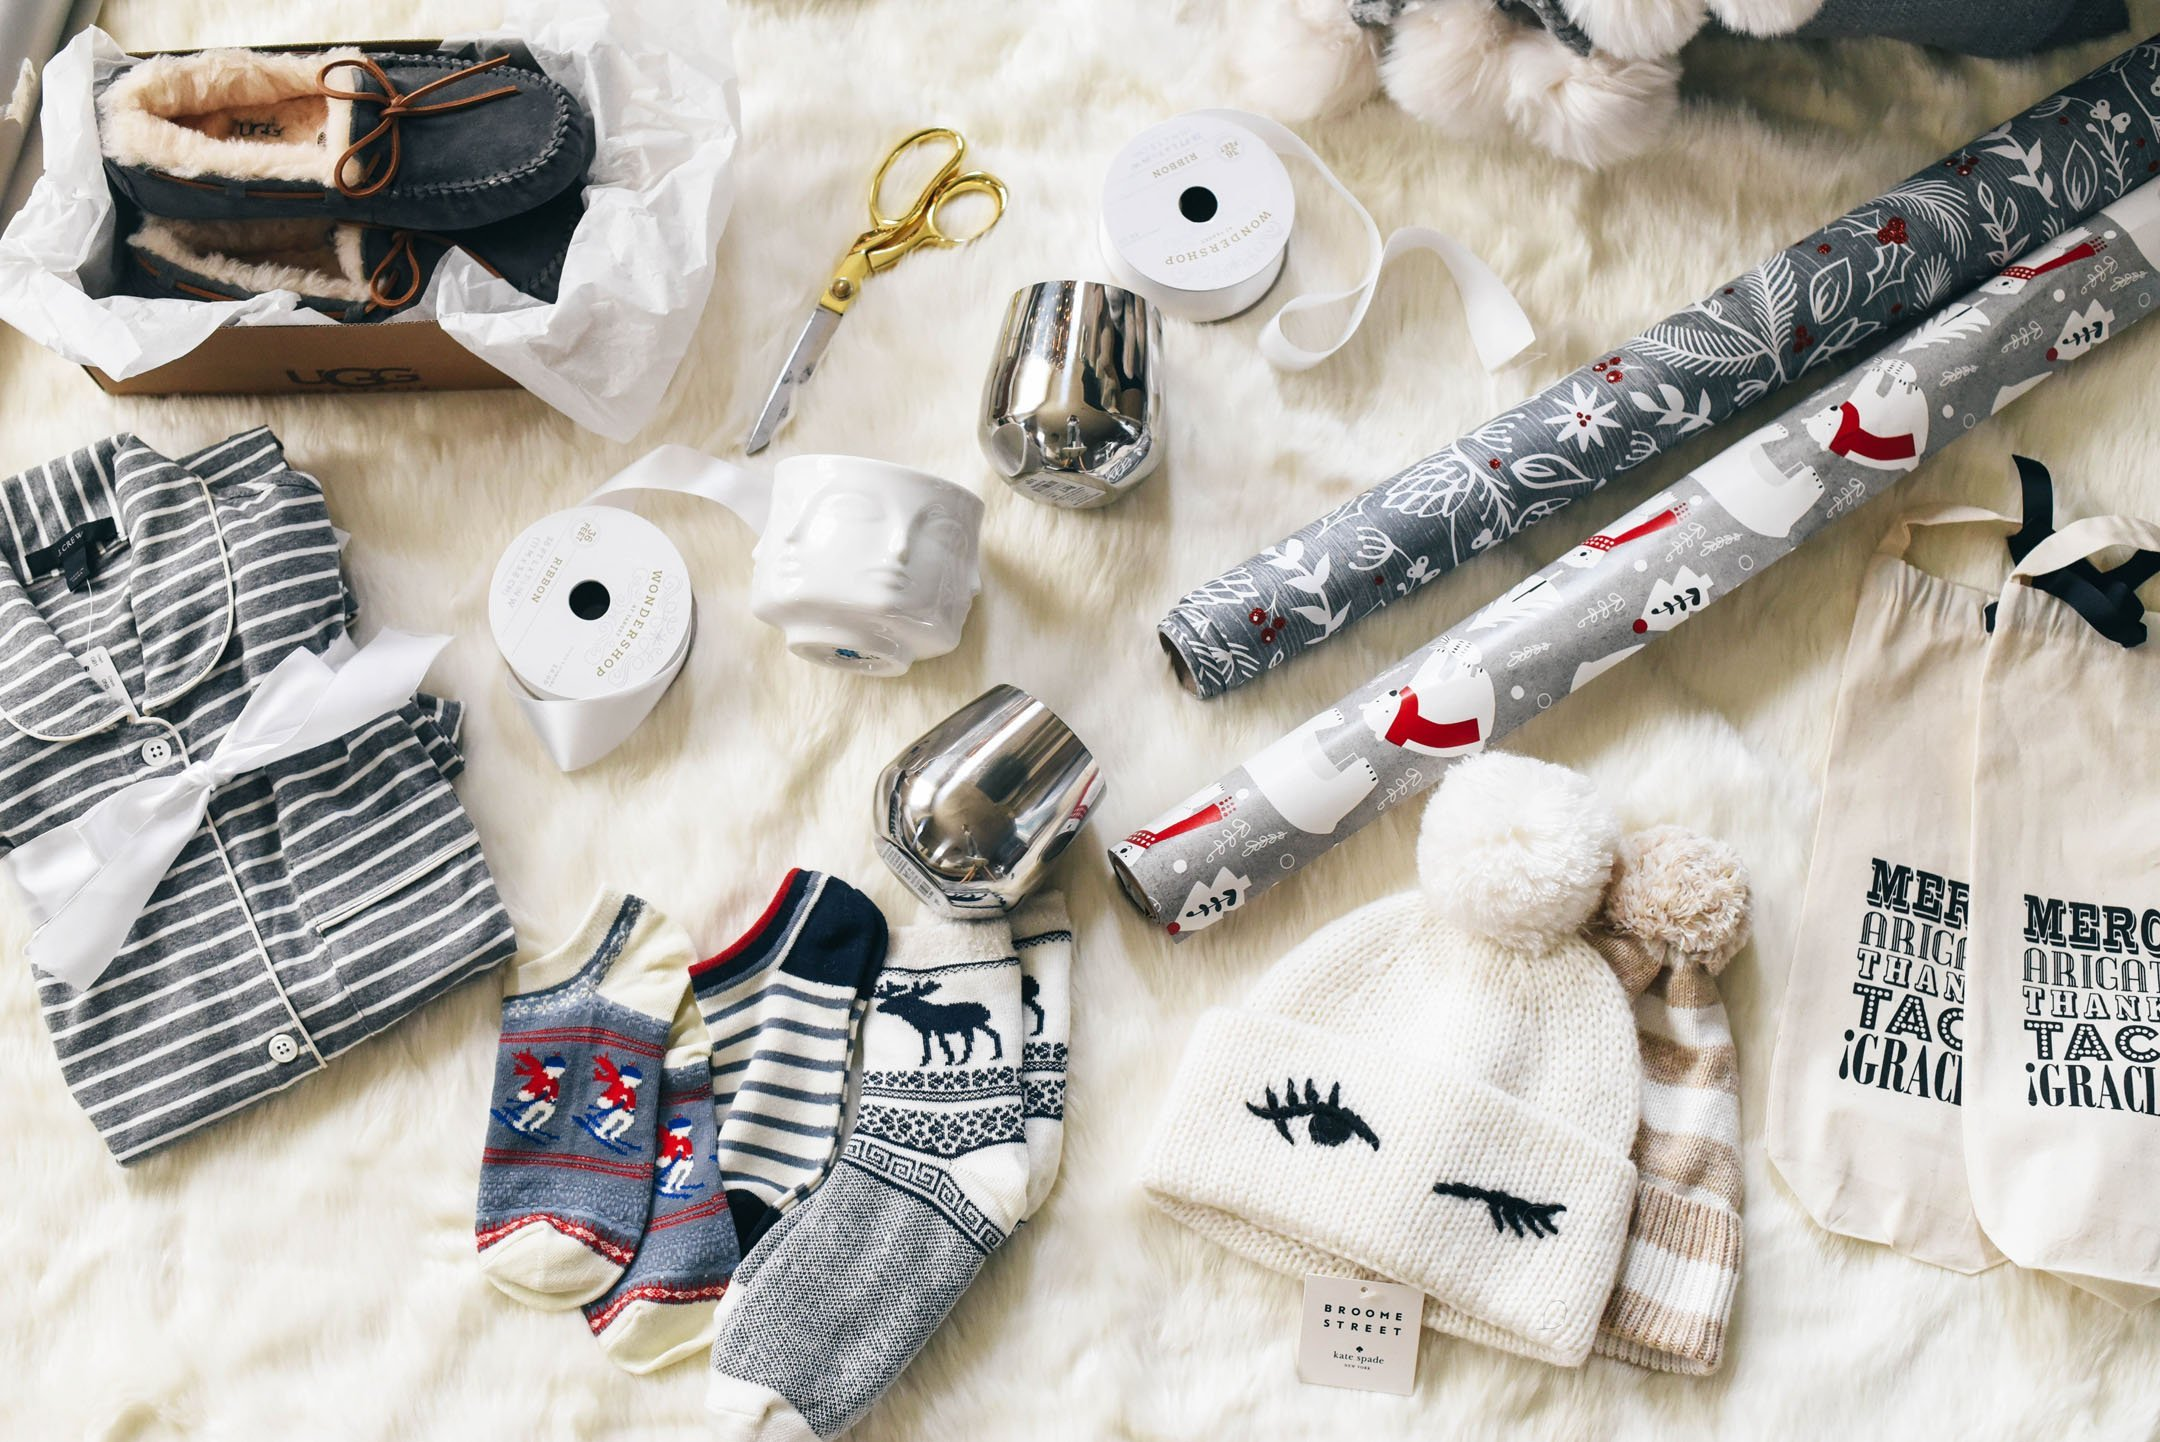 Best Wedding Gifts Under 100: Holiday Gift Guide: Gifts Under $100